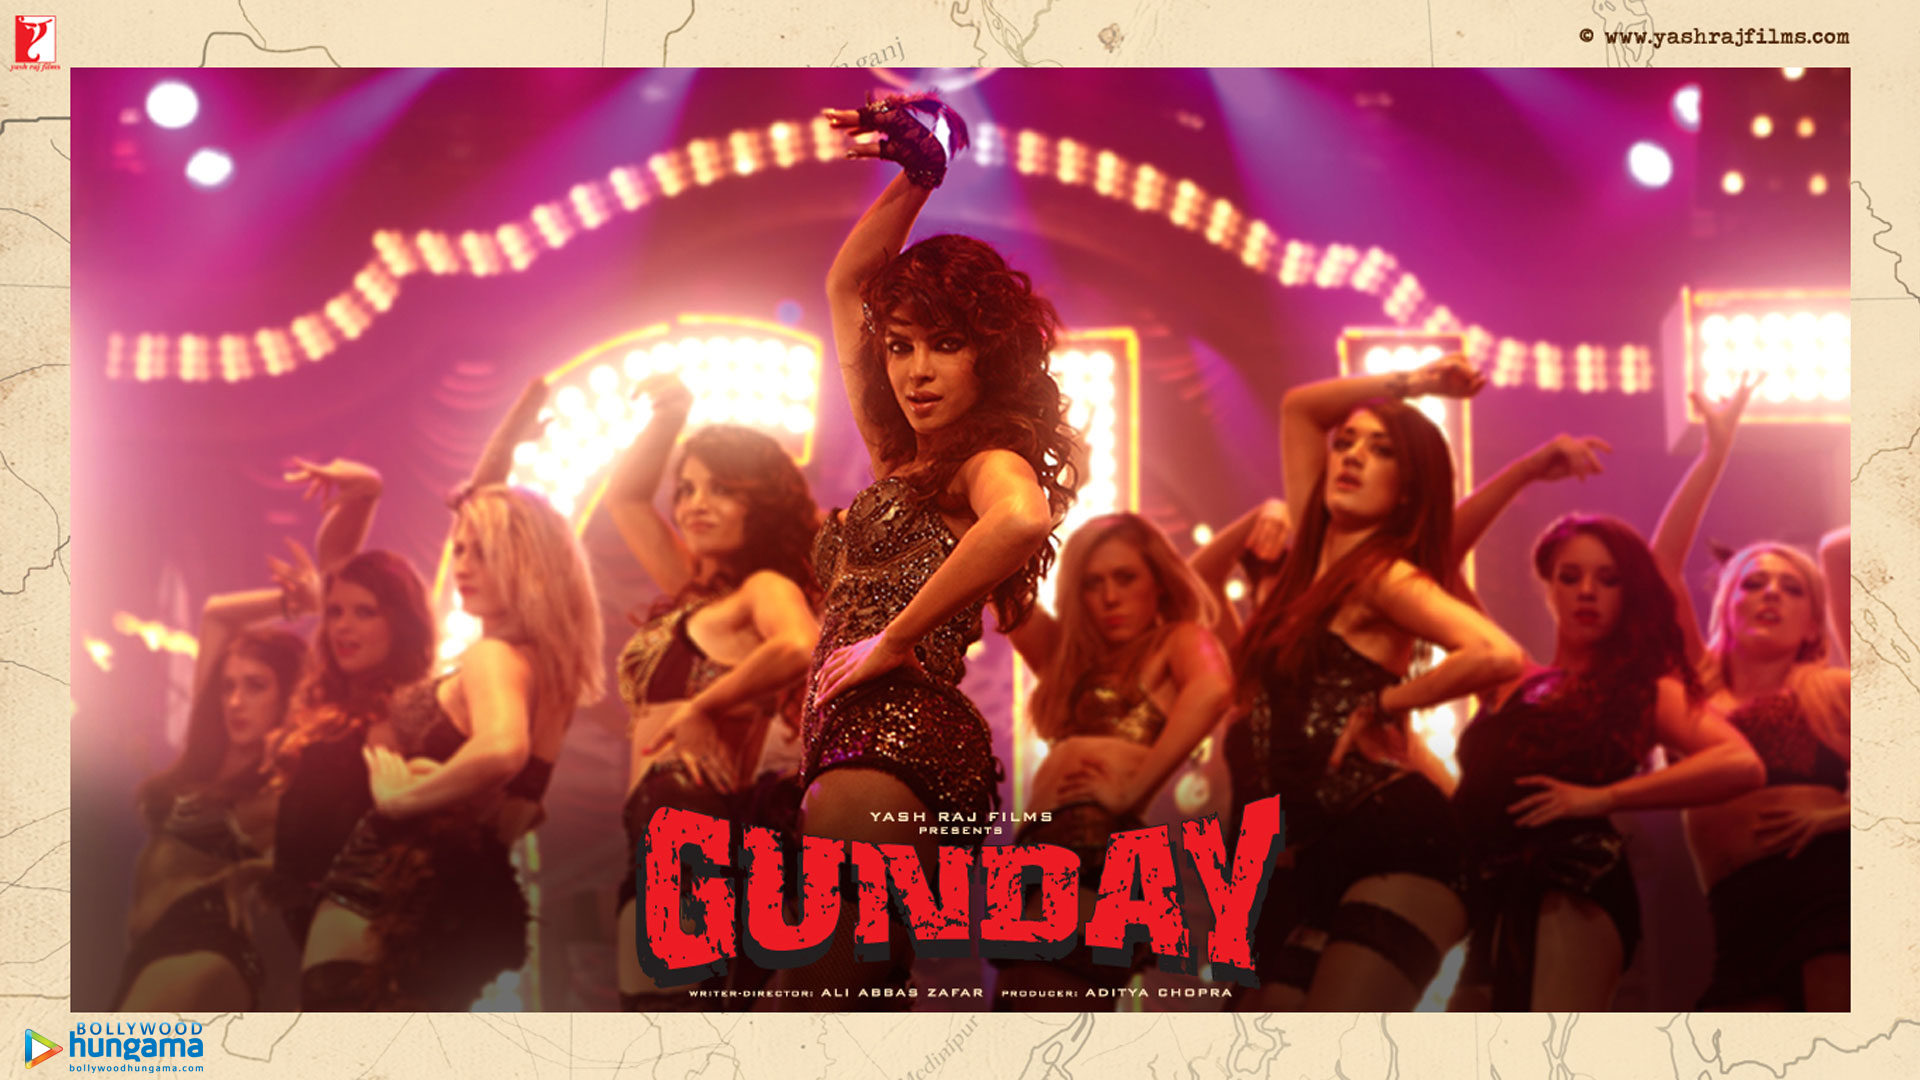 Gunday Movie Dialogues Poster - Sexy Priyanka Chopra